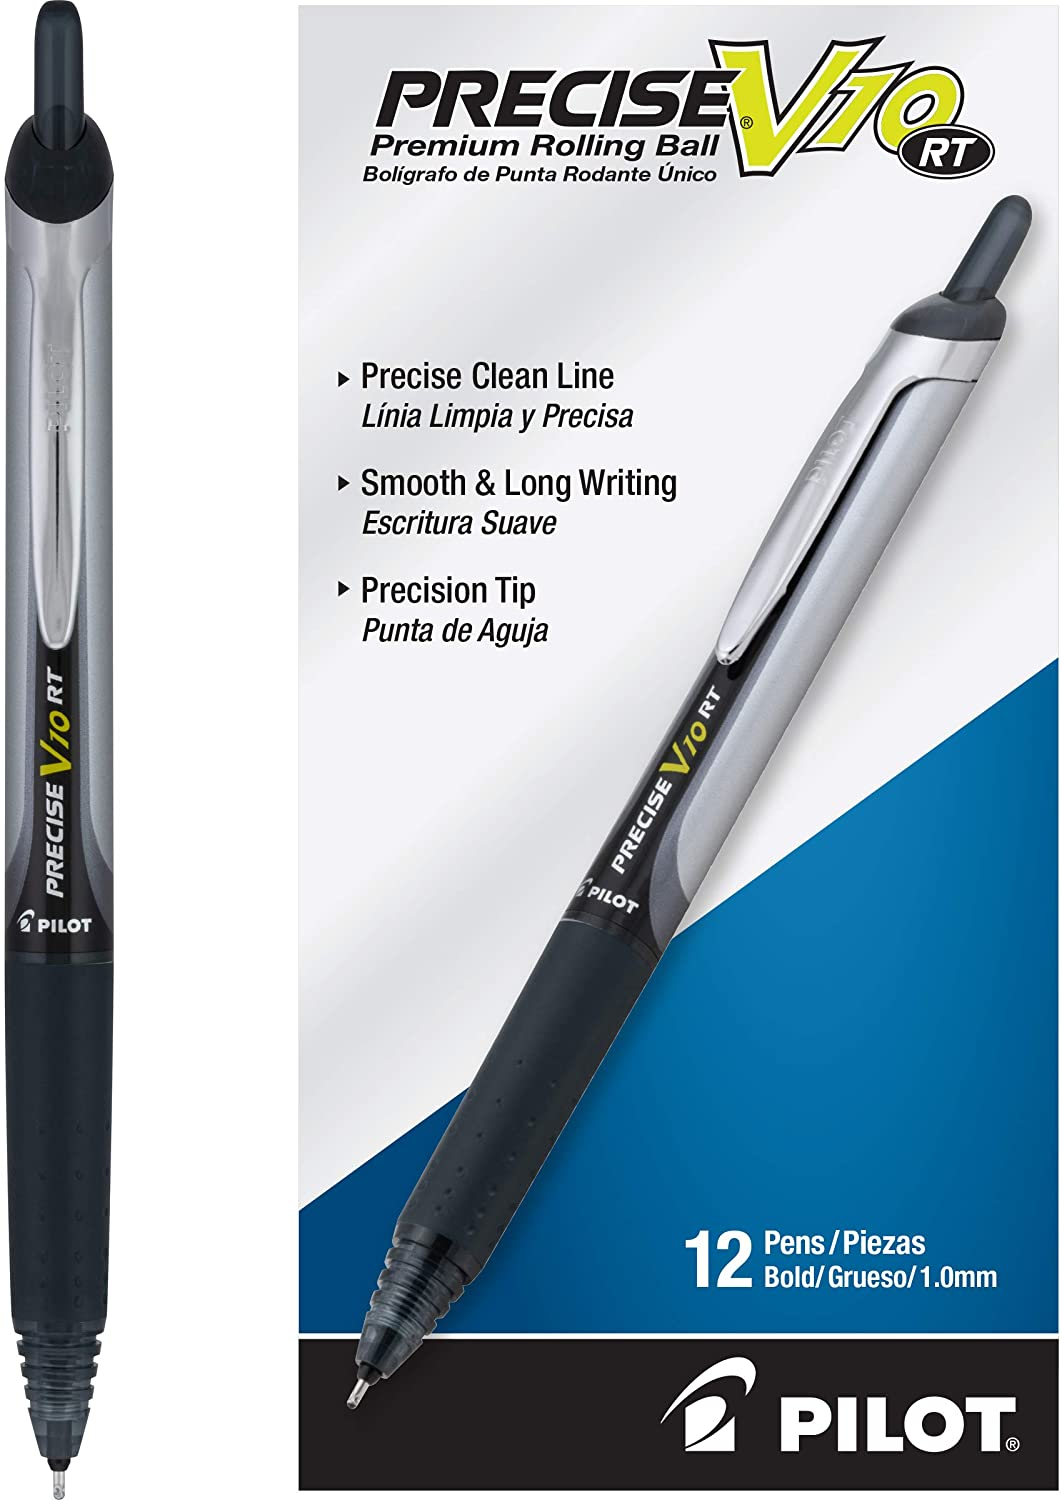 PILOT Precise V10 RT Refillable & Retractable Rolling Ball Pens, Bold Point, Black Ink, 12 Count (13450)